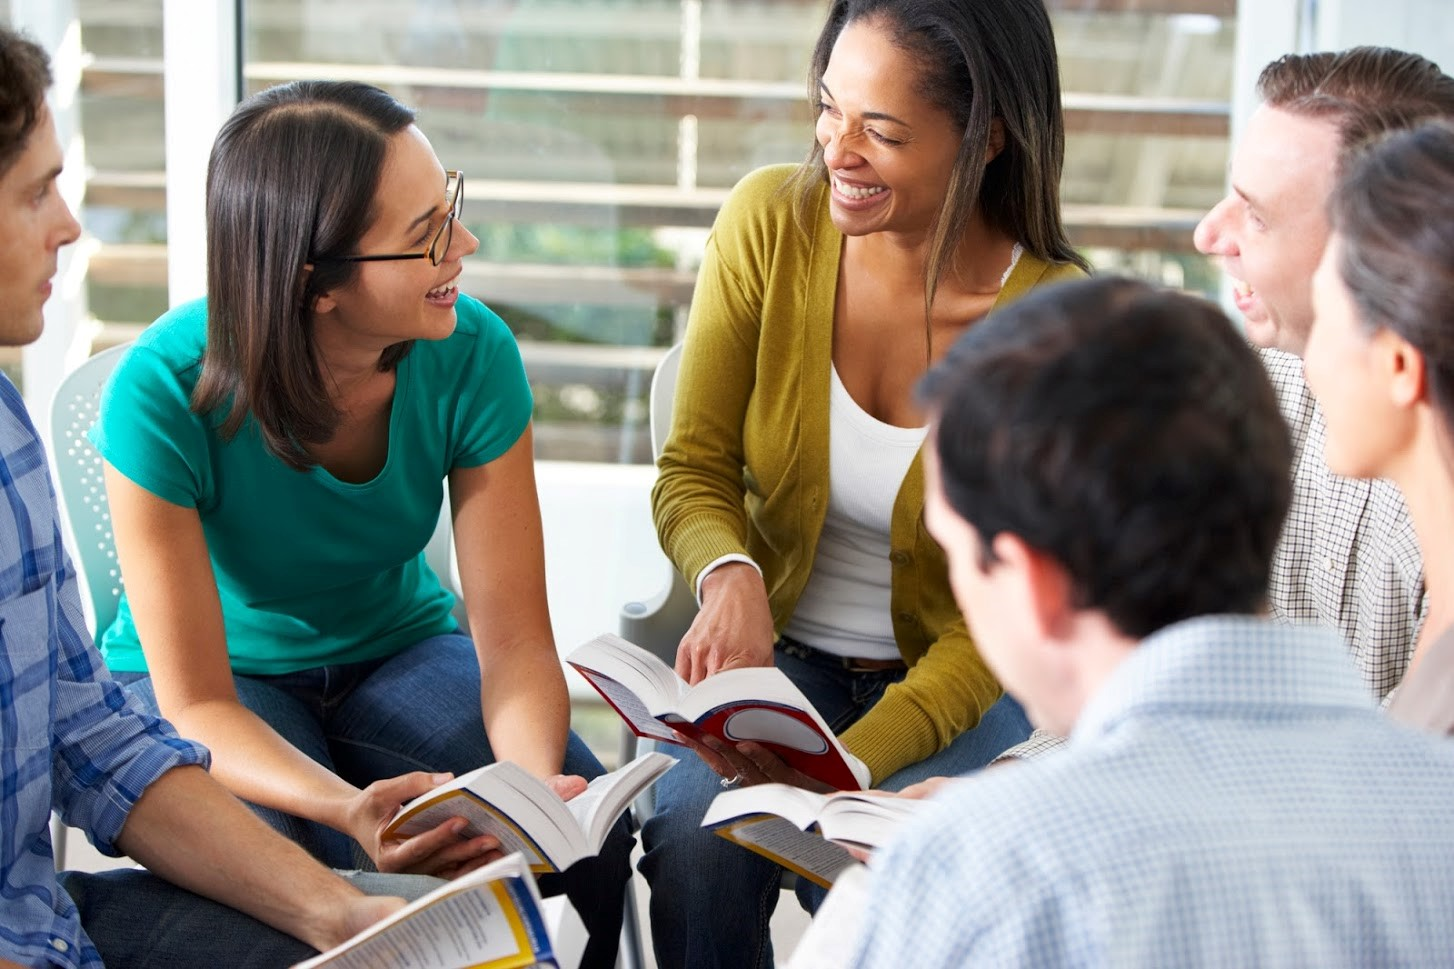 4 Reasons to Seek out Counseling While at College